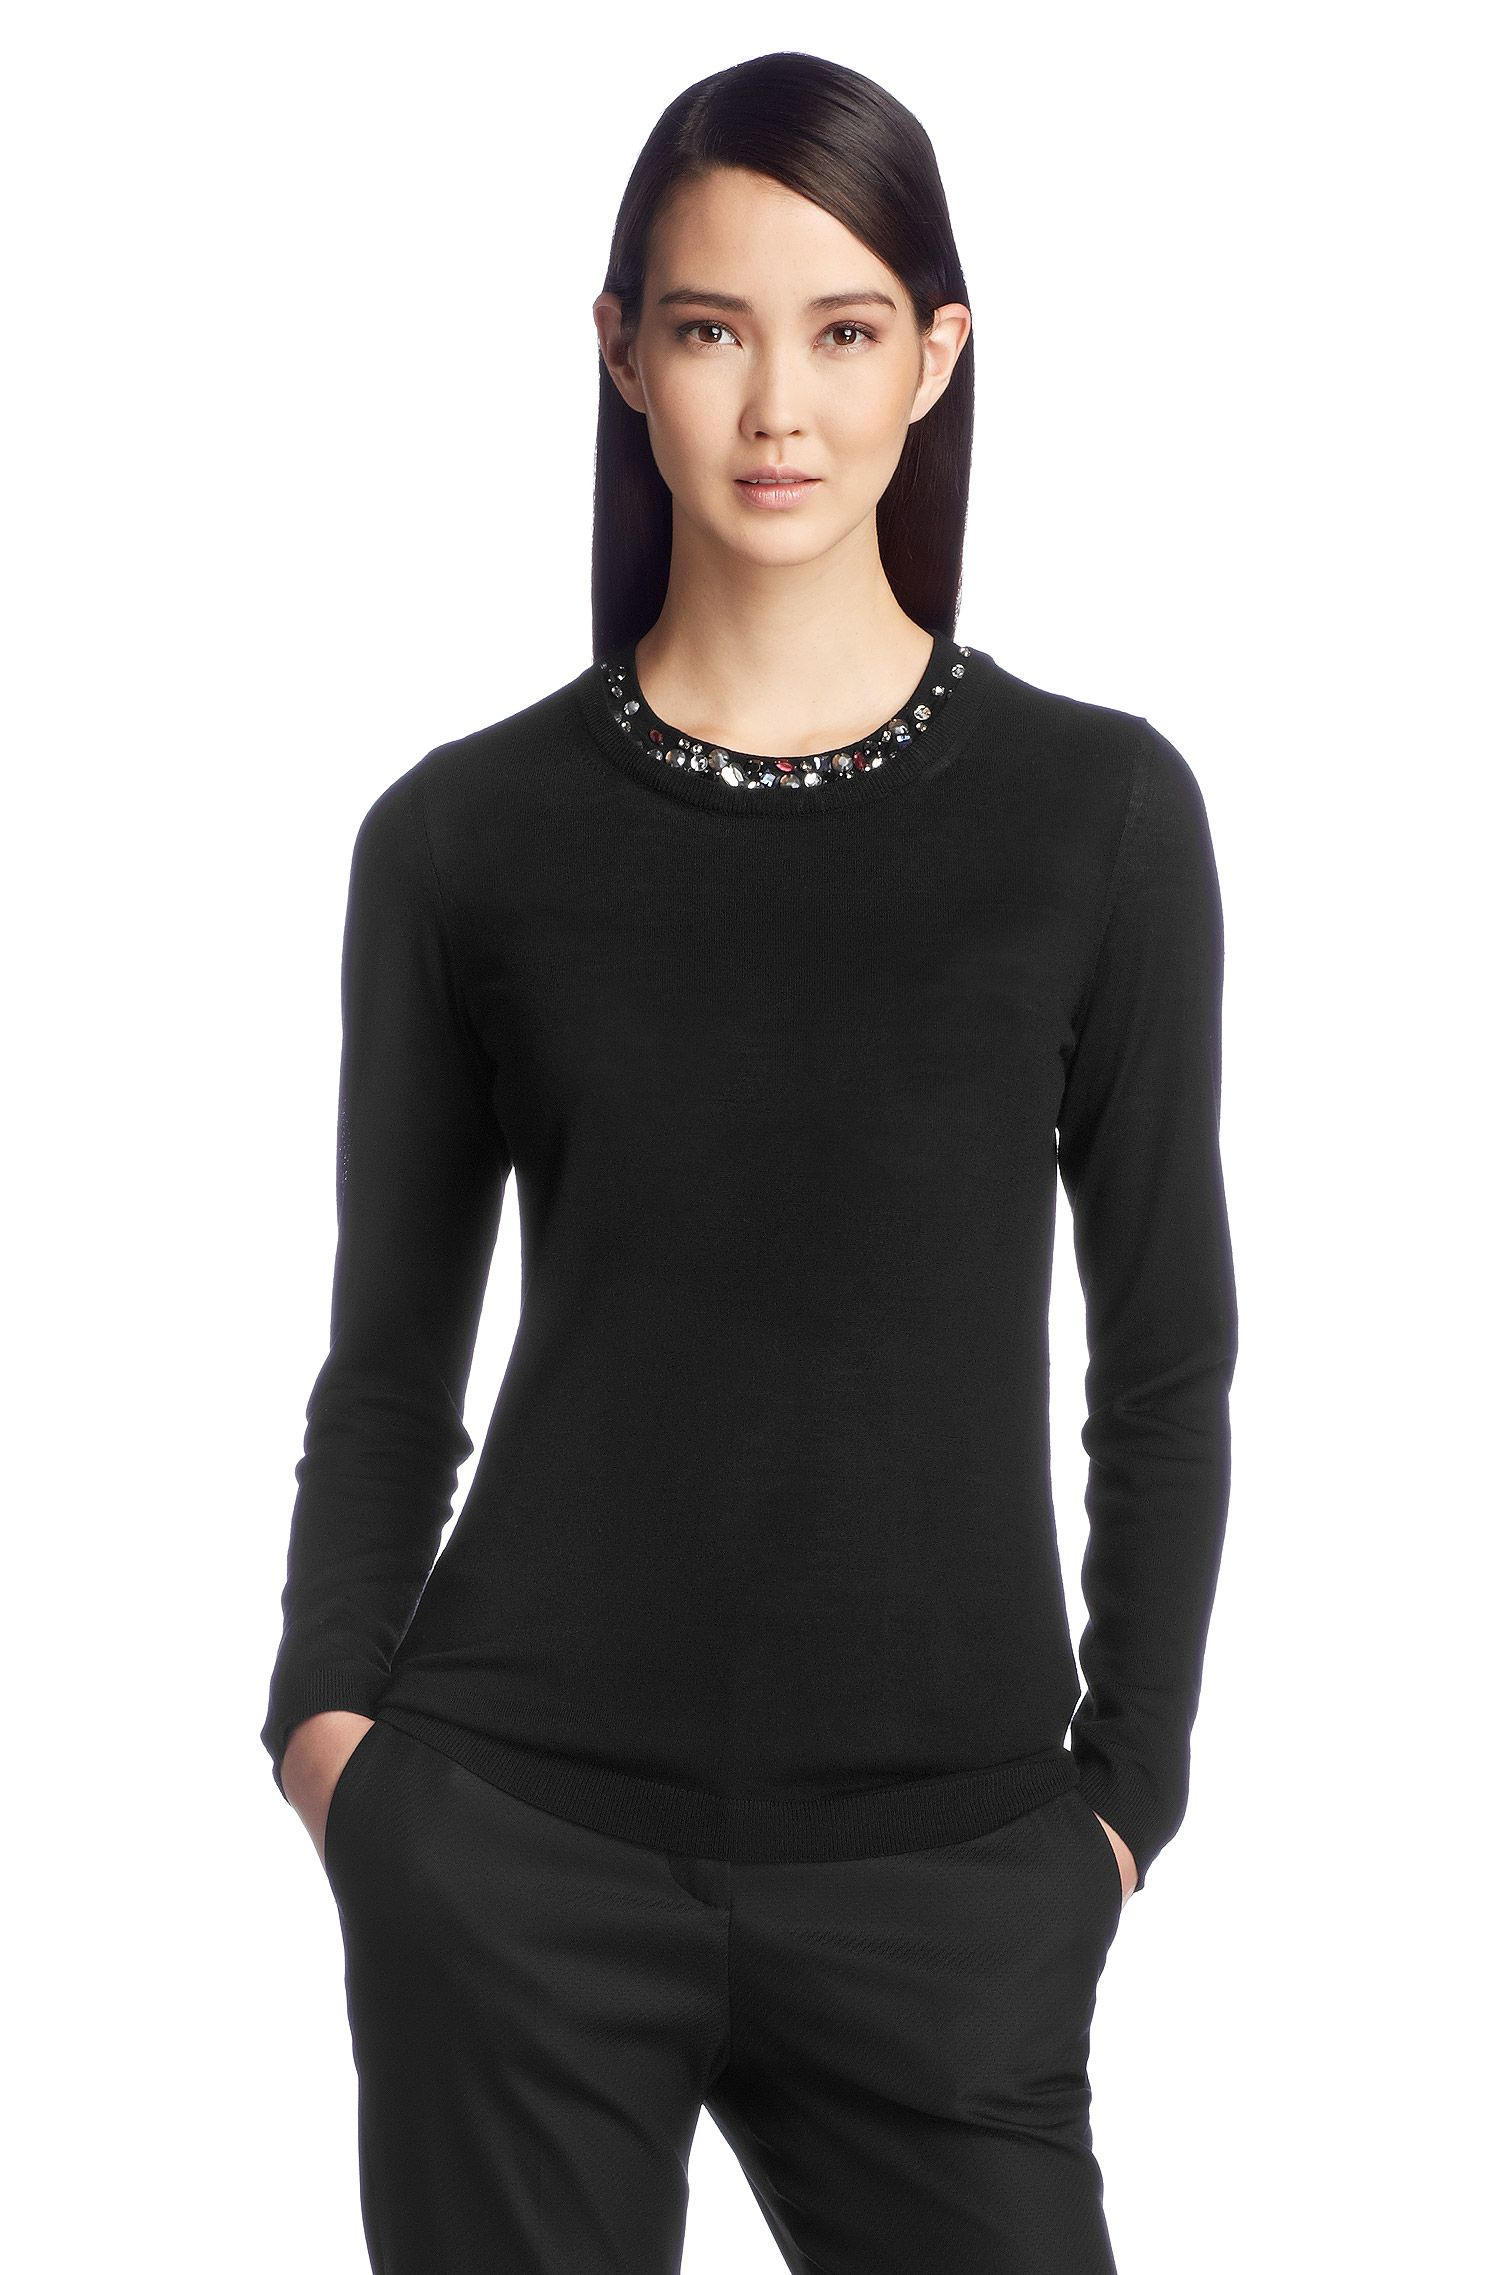 Pull-over en laine vierge, F4841